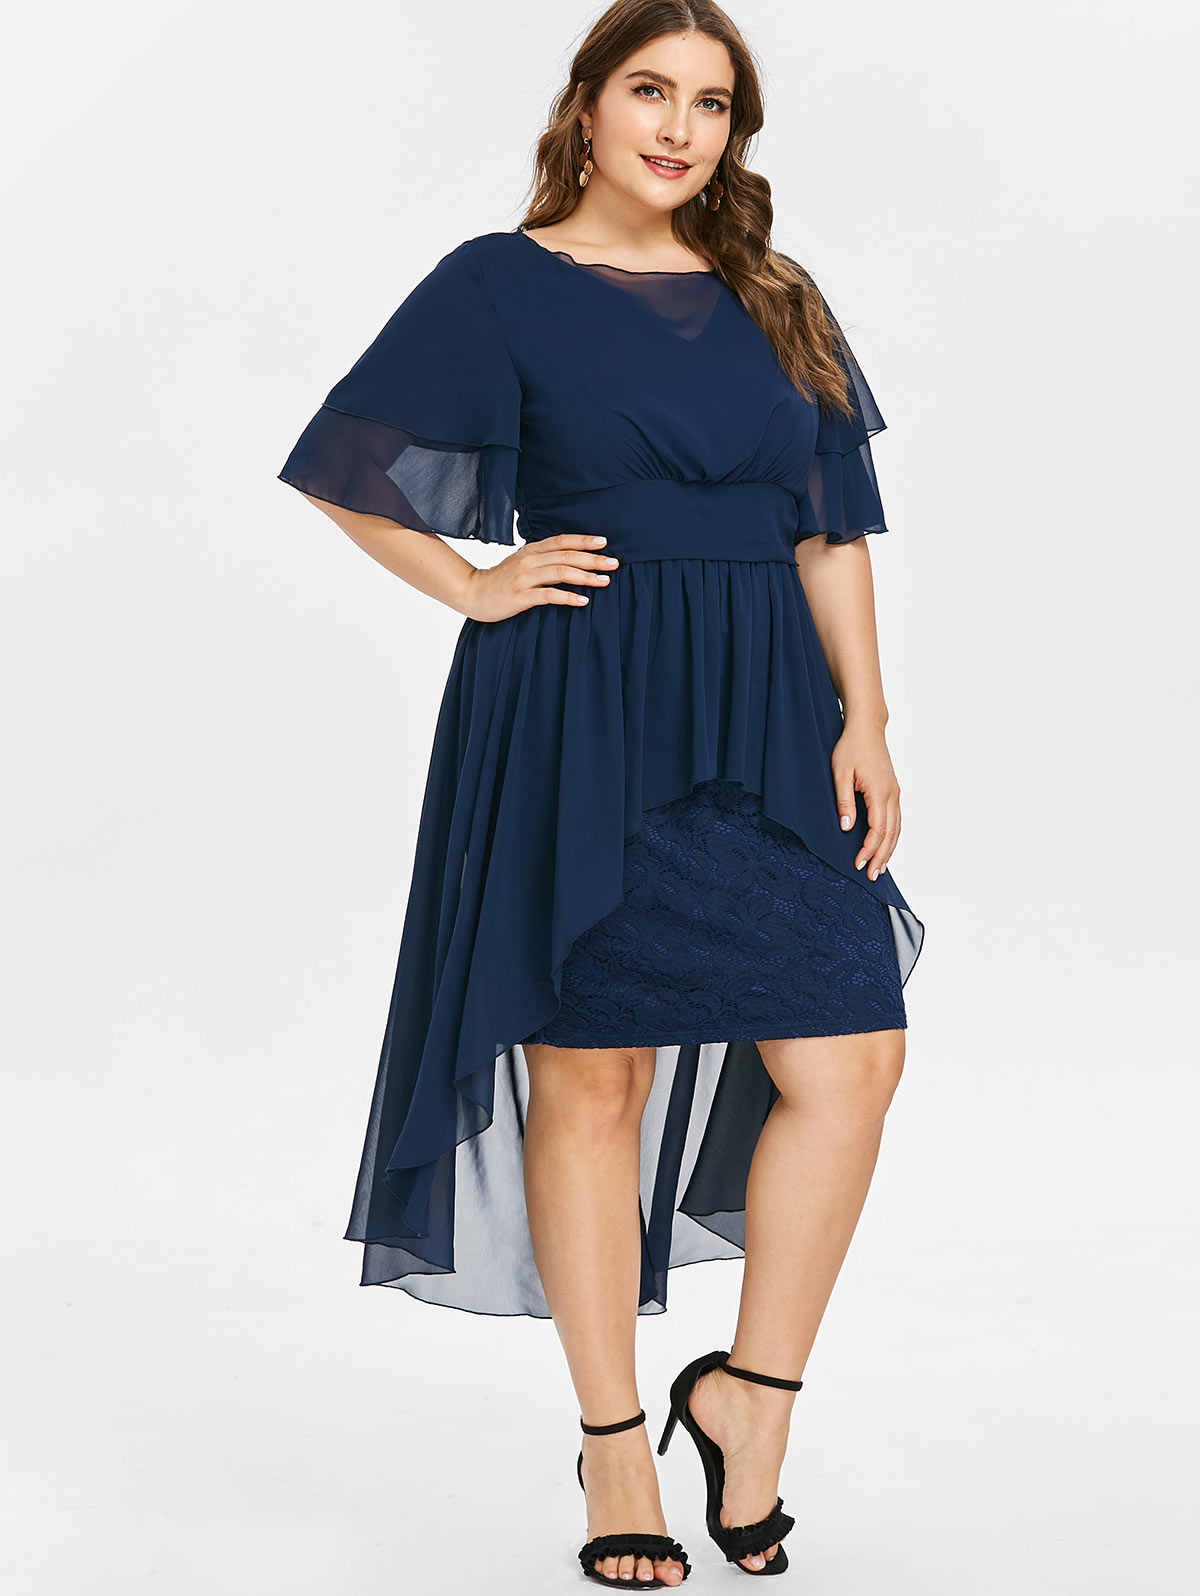 Wipalo Plus Size 5XL High Waist Lace Panel High Low Dress Elegant Ladies  Half Sleeves Mid-Calf Length Party Dress Vestidos